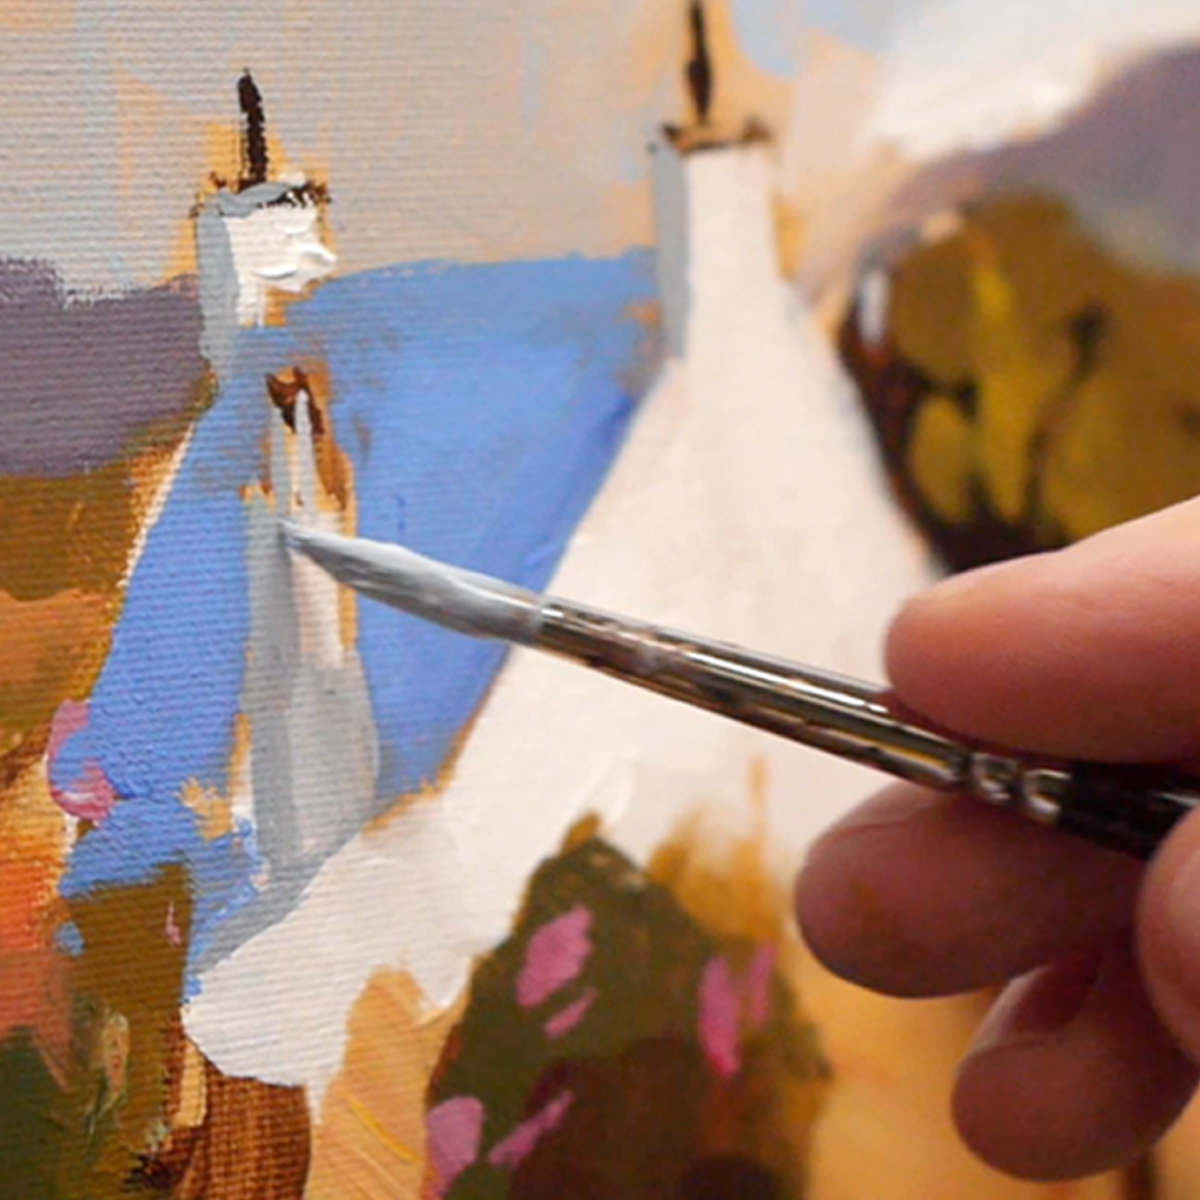 Closeup of paintbrush connecting with canvas